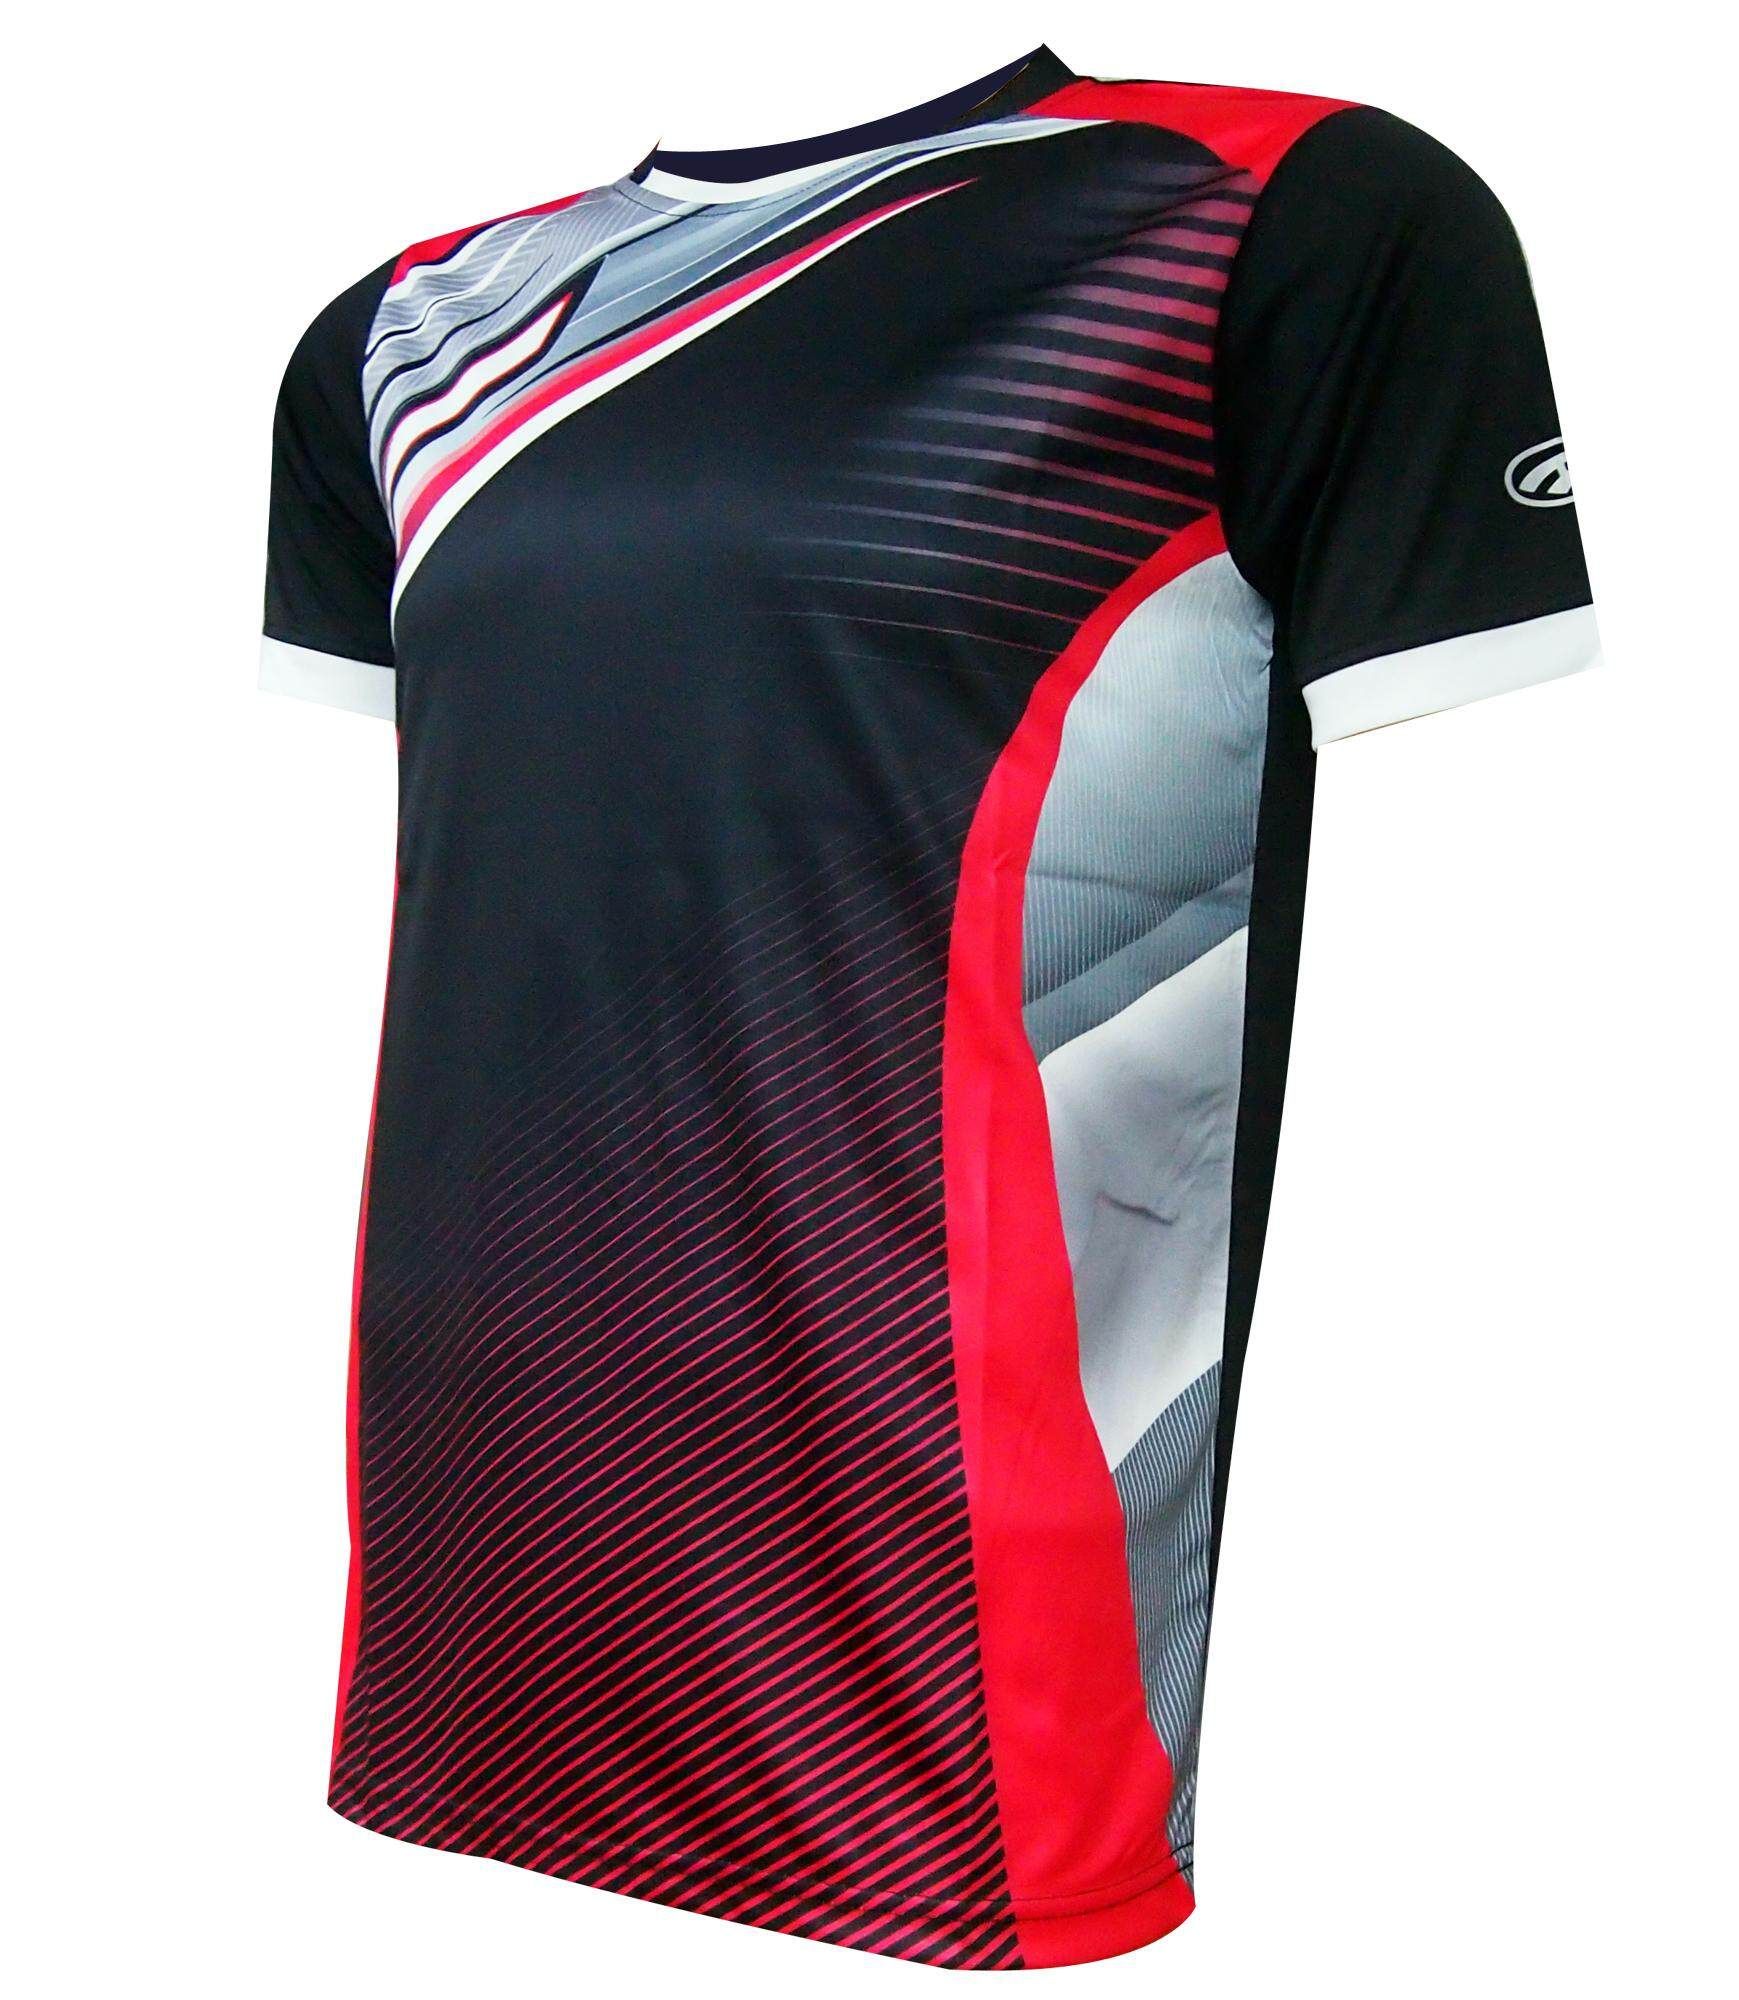 AMBROS Men's Poly Paper Transfer Jersey -Black/Red